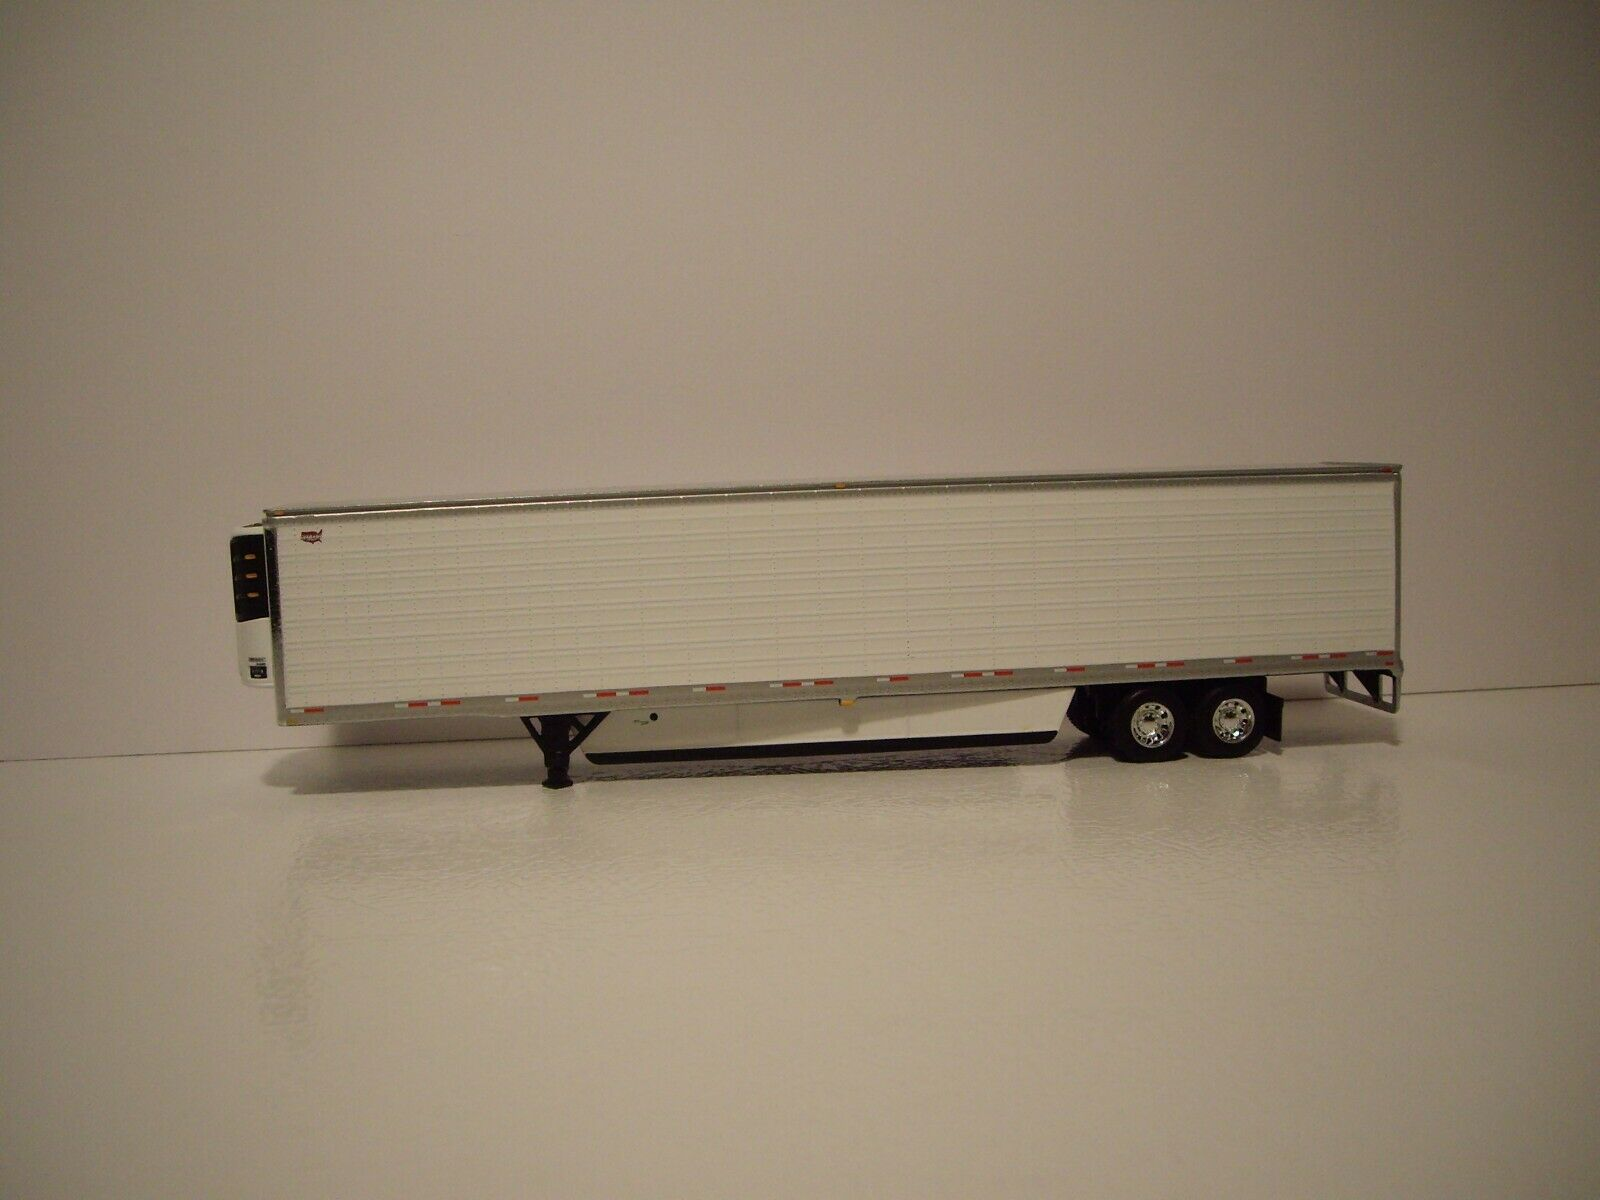 DCP FIRST GEAR 1/64 53' WABASH WHITE ARCTICLITE TANDEM AXLE REEFER VAN 1